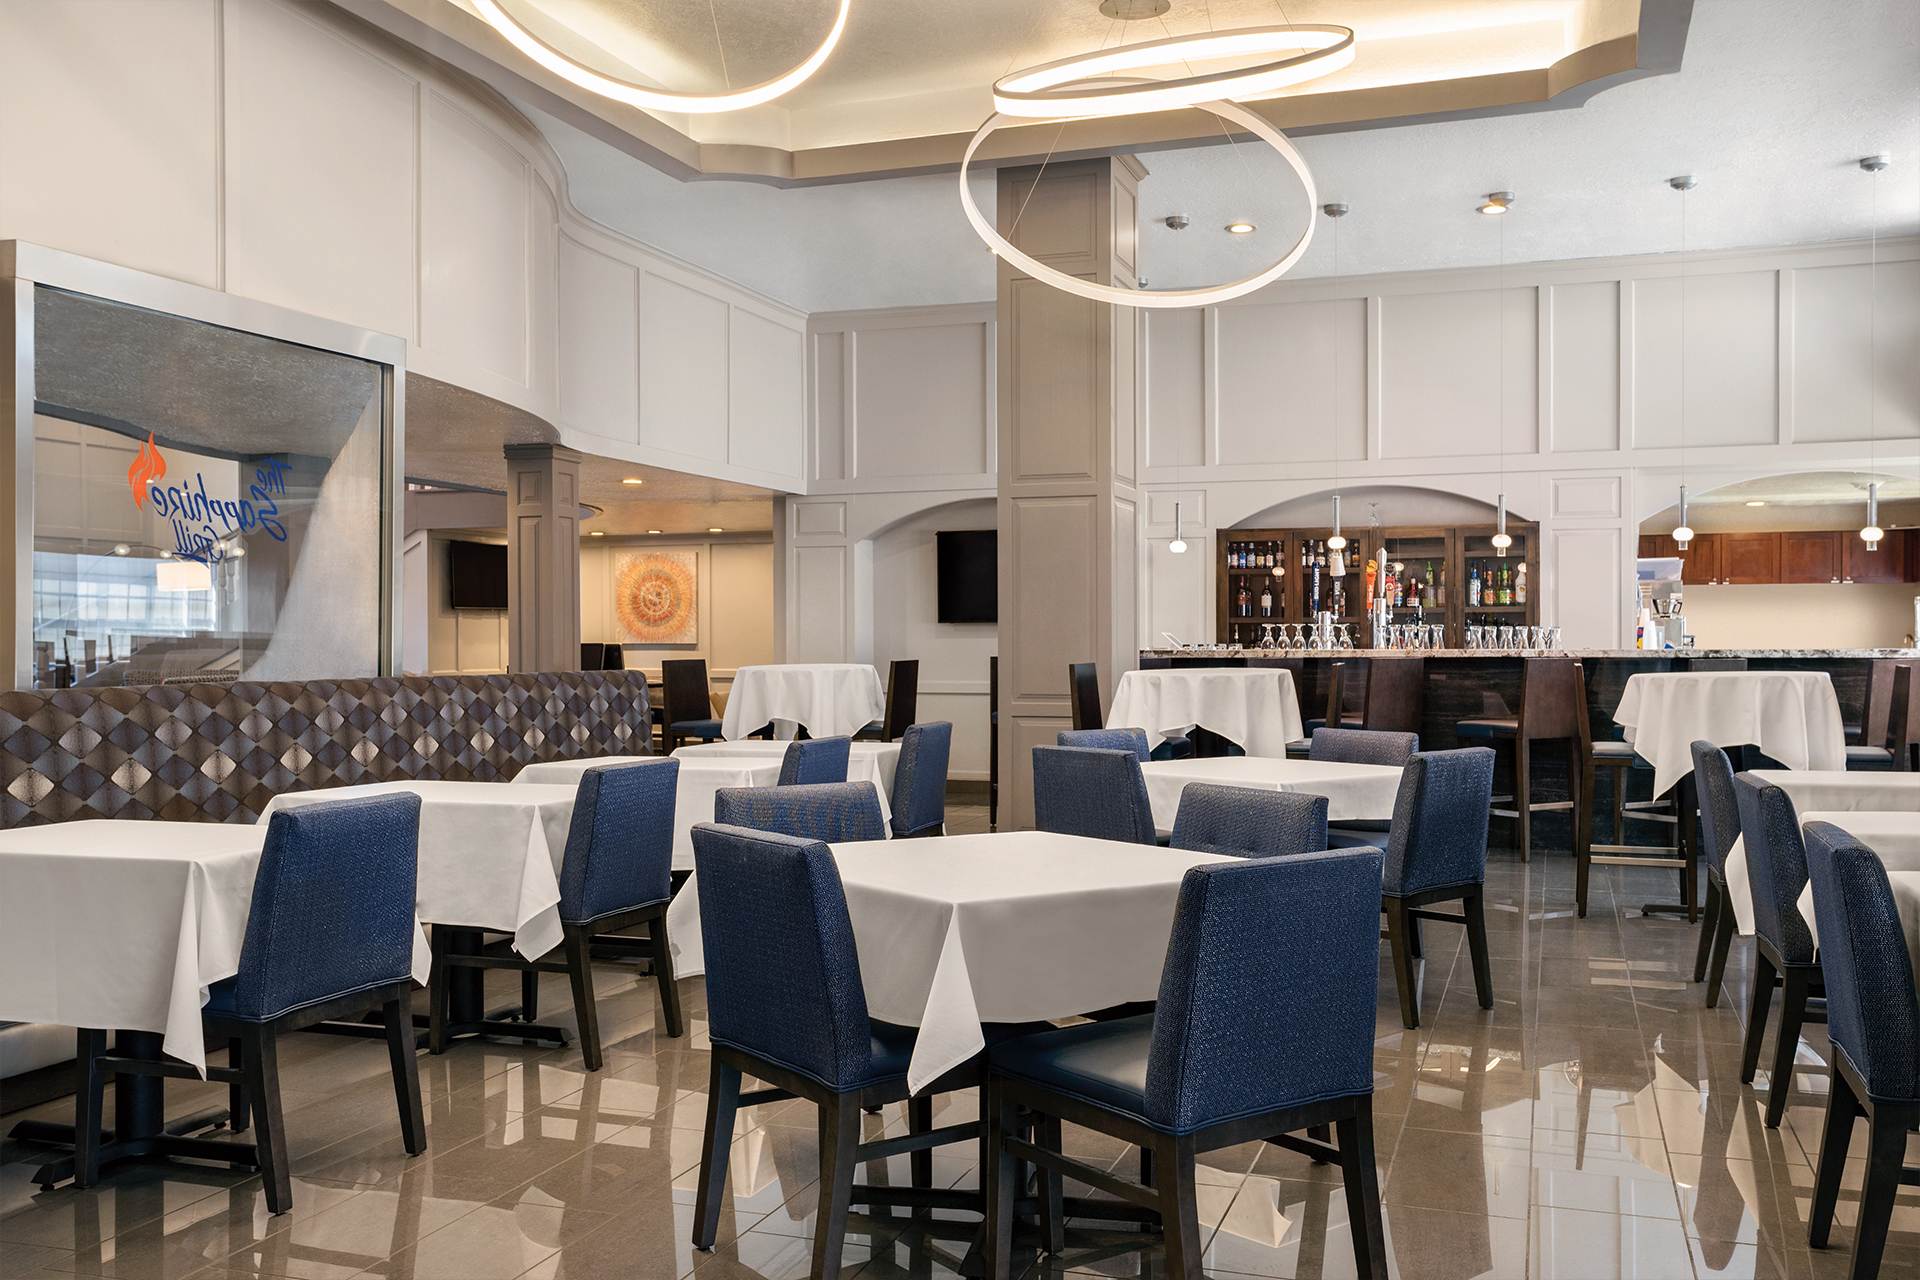 https://www.hotelsbyday.com/_data/default-hotel_image/2/10042/the-sapphire-grill-at-radisson.jpg